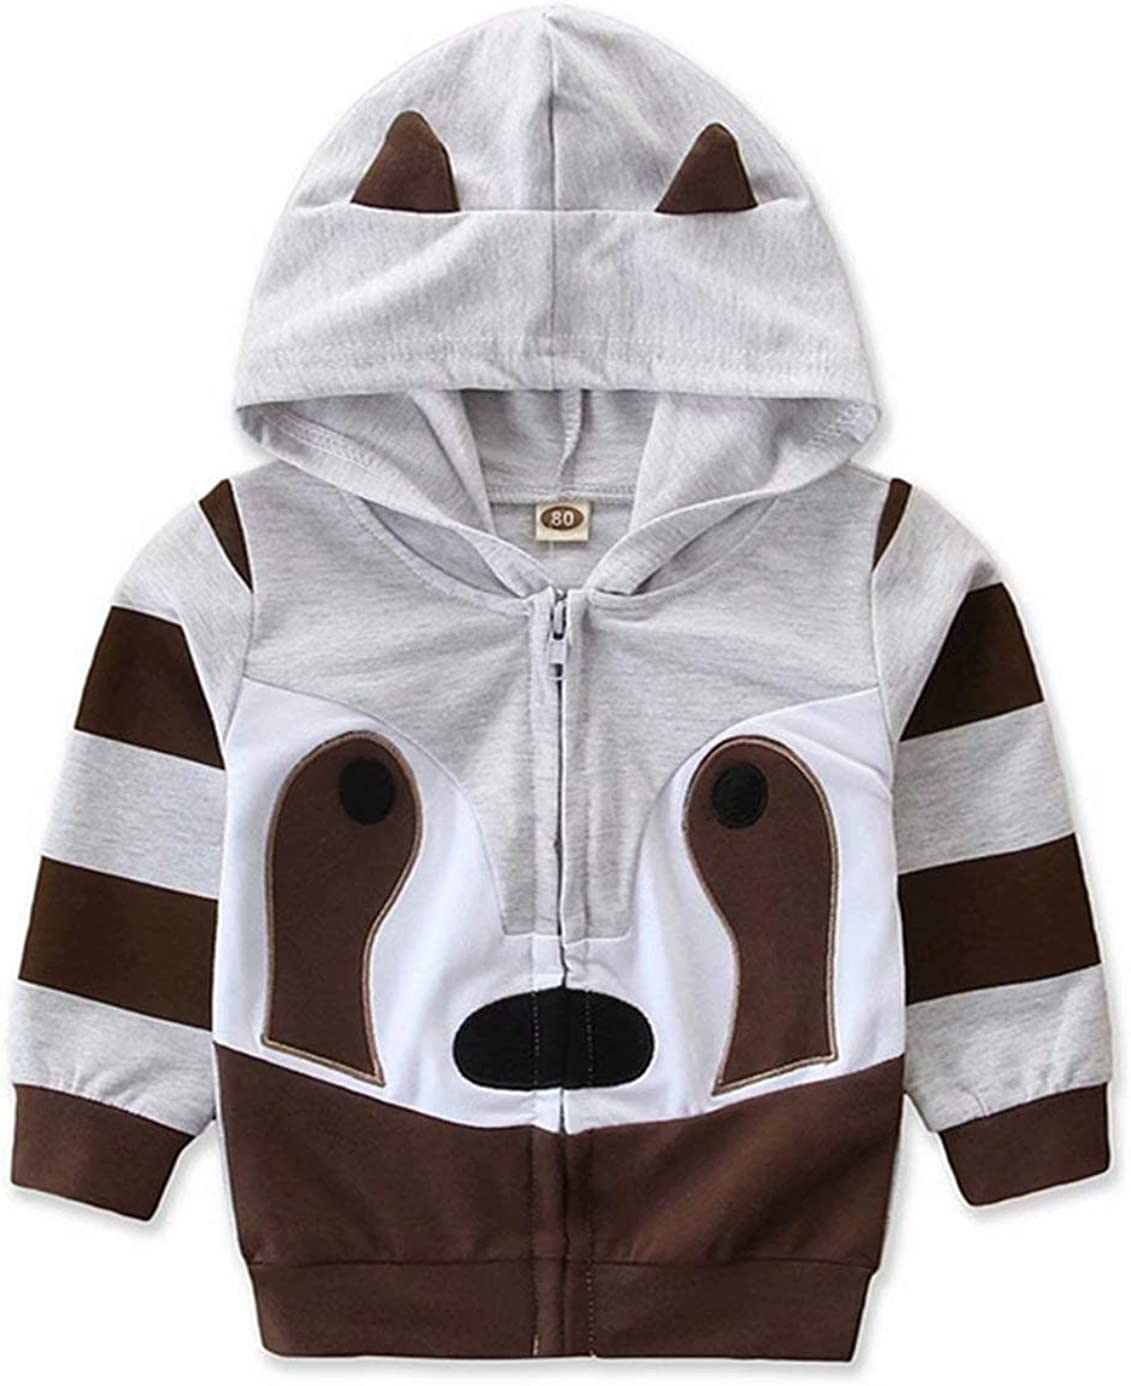 Kimocat Boys Clothes Long Sleeve Knit Zipper Hoodie Sweatshirt Jacket Casual Coat with Dinosaur-Shaped